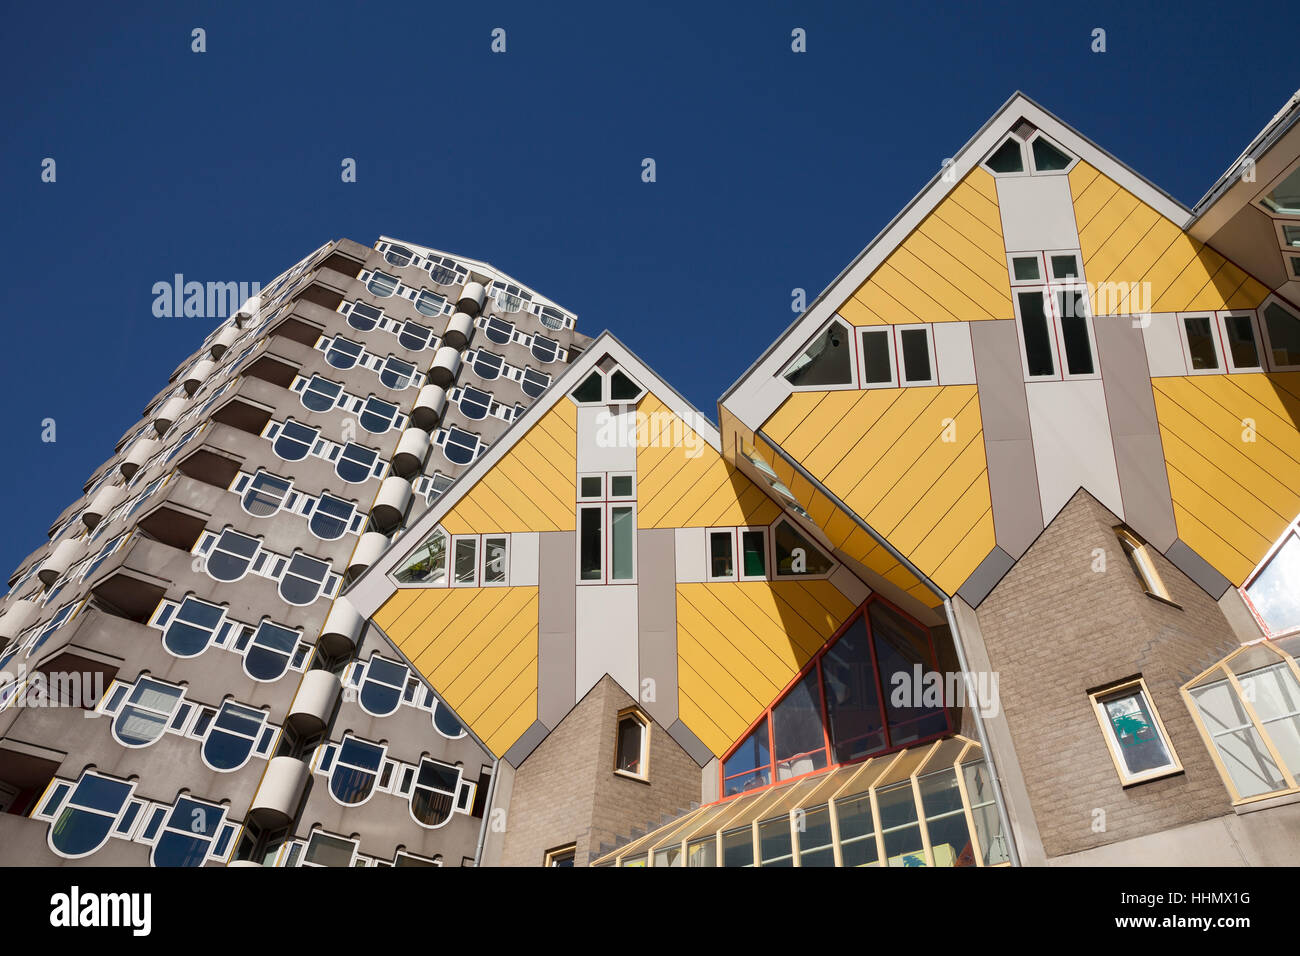 Container Haus Cube Cube House Not Container Stockfotos Cube House Not Container